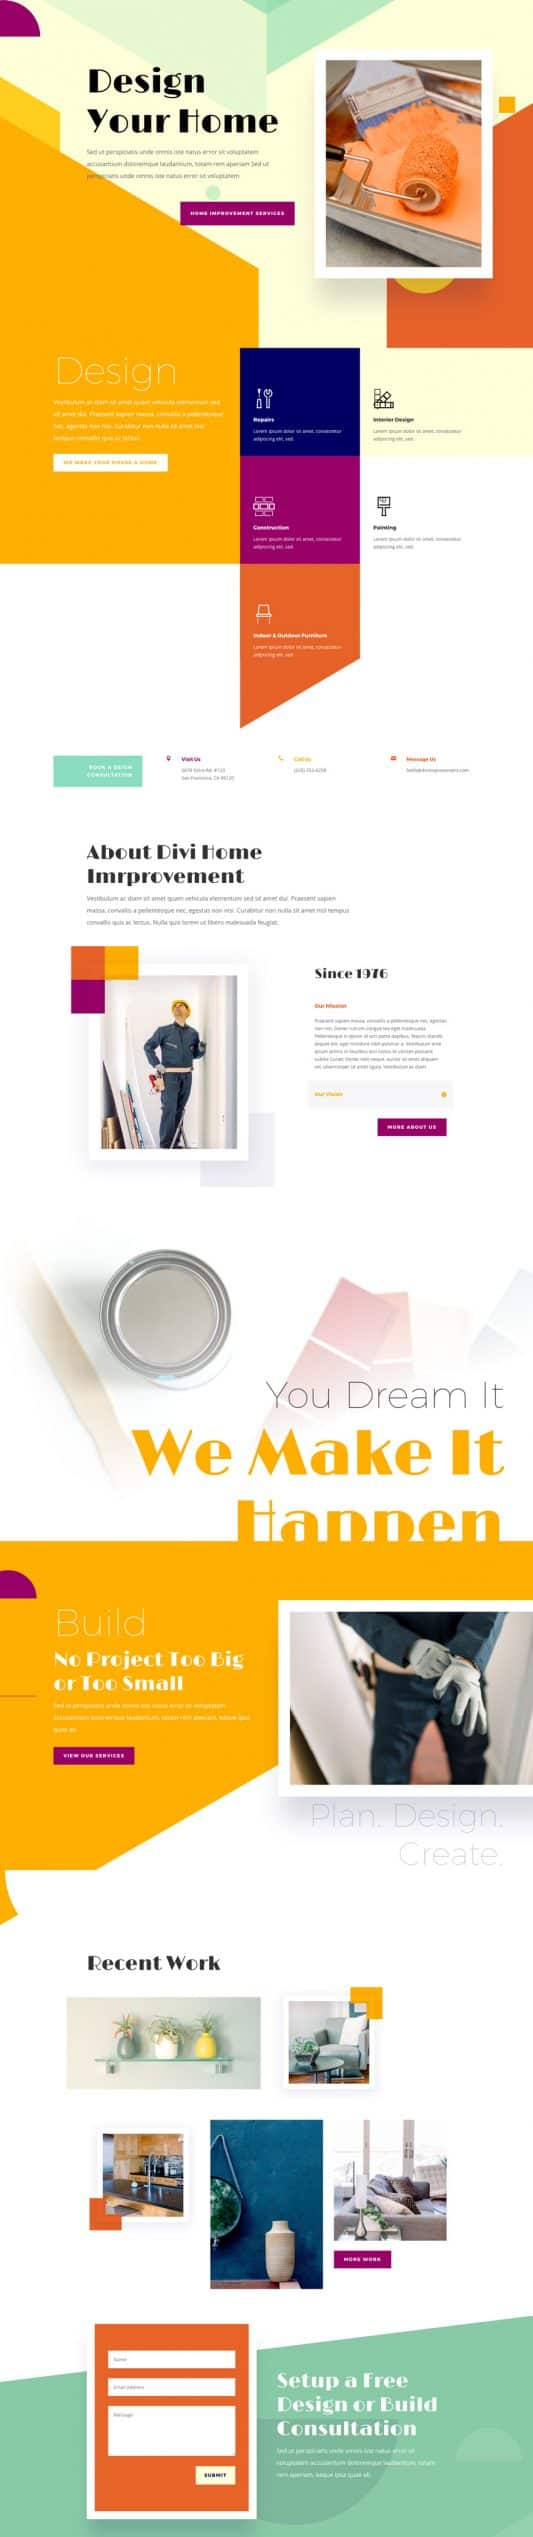 Home Improvement Web Design 5